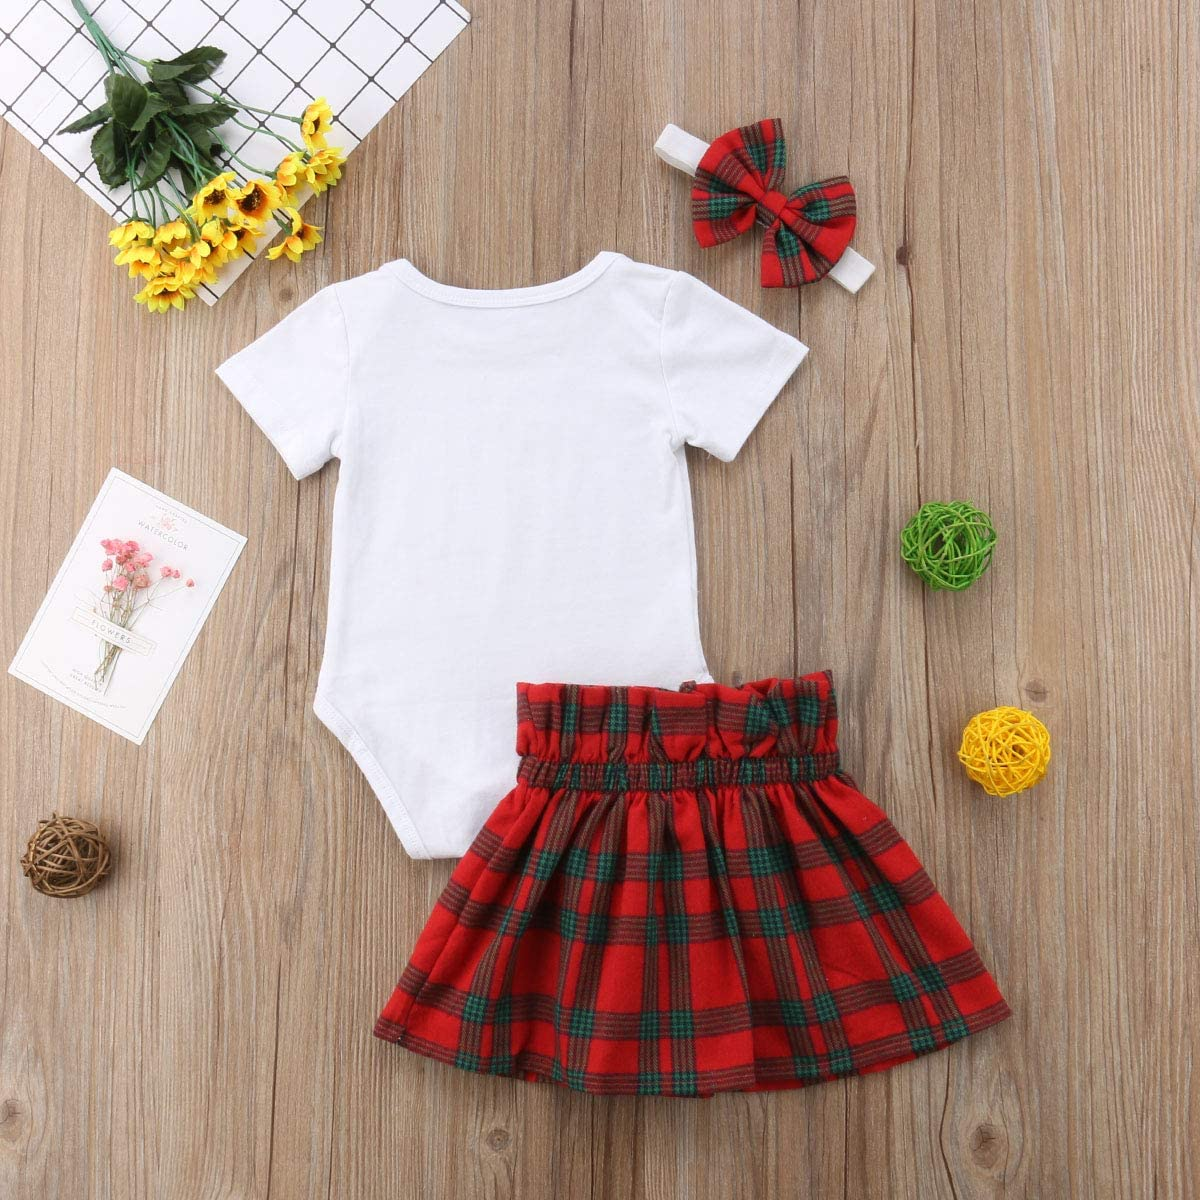 Infant Baby Girl Christmas Outfit Santa Baby Romper Bosysuit+Plaids Skirt+Bow Headband Clothes Set